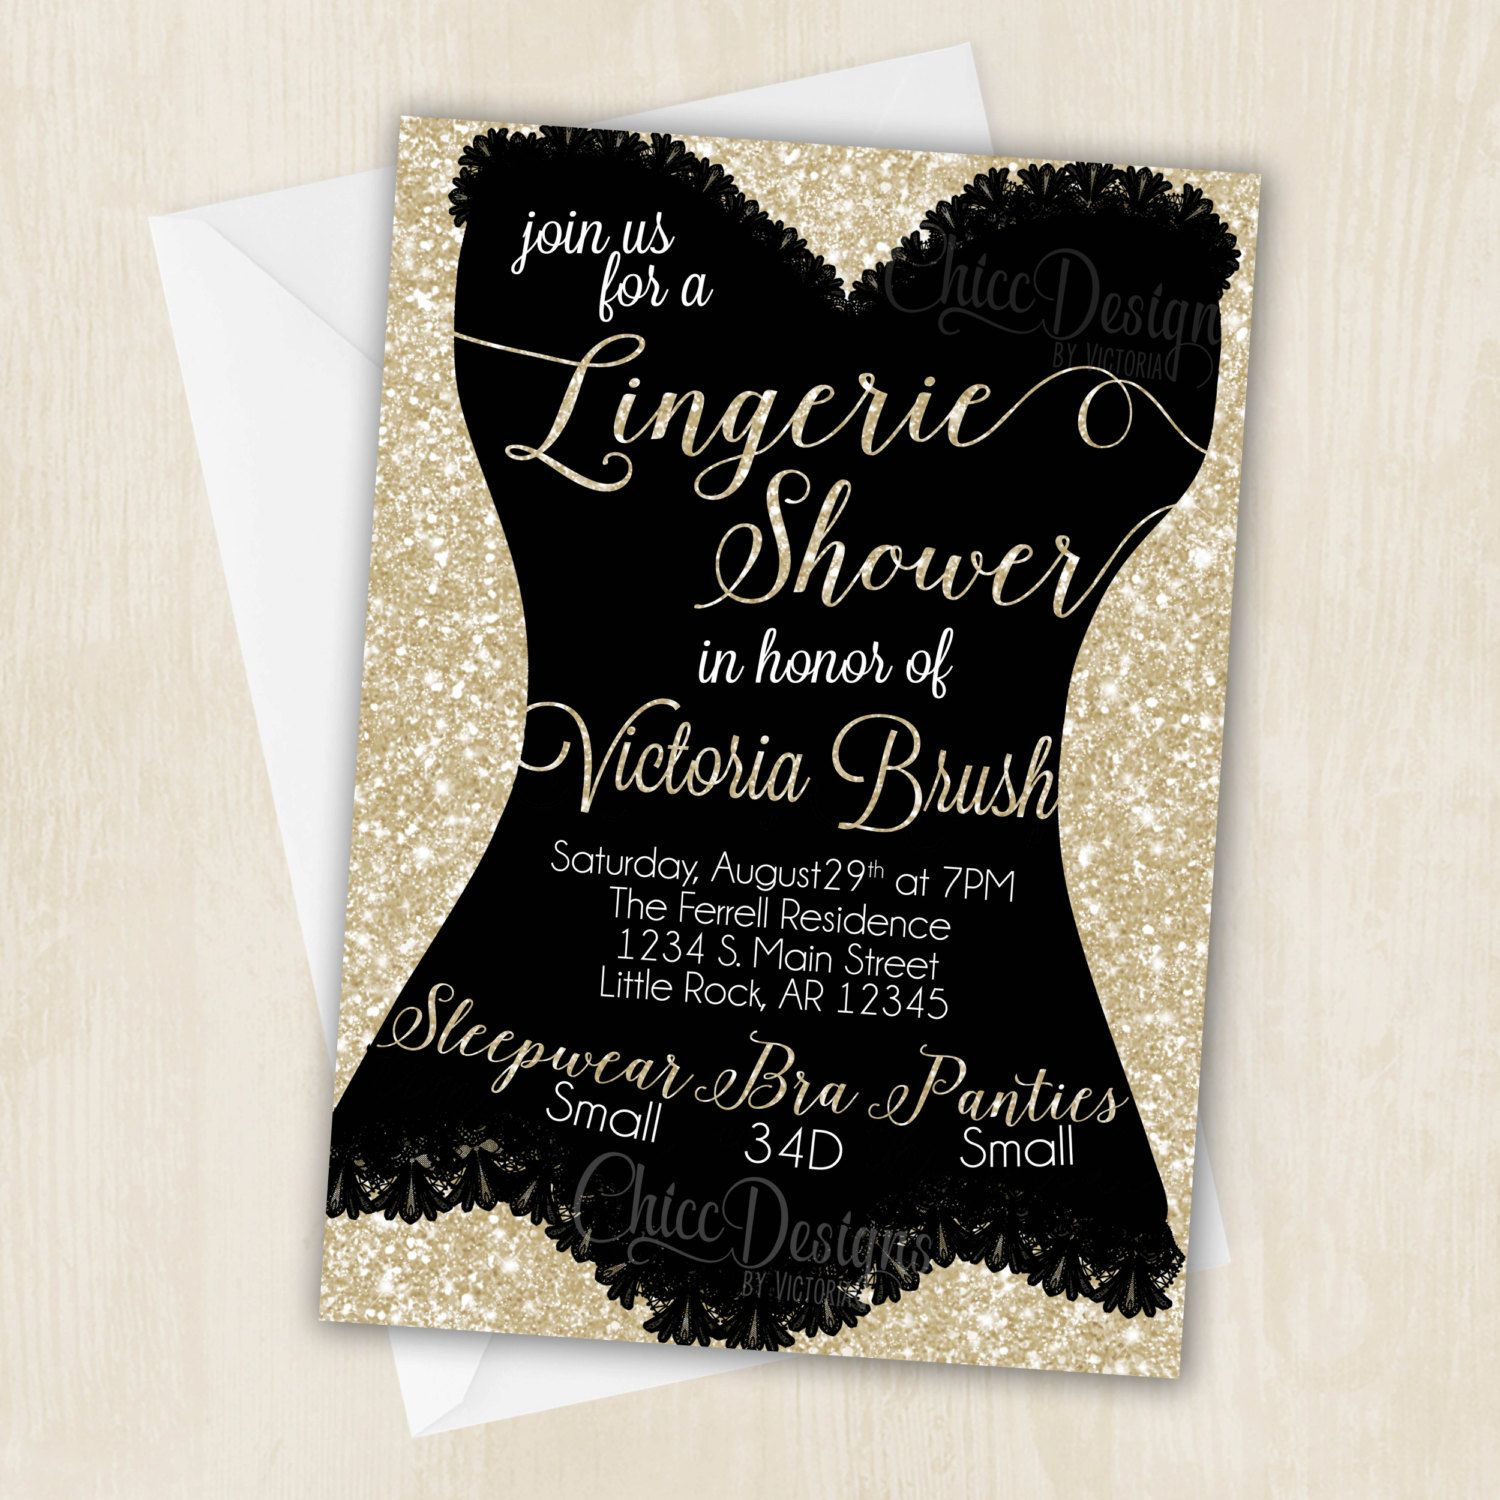 Lingerie Shower Invitation White Gold Champagne Color